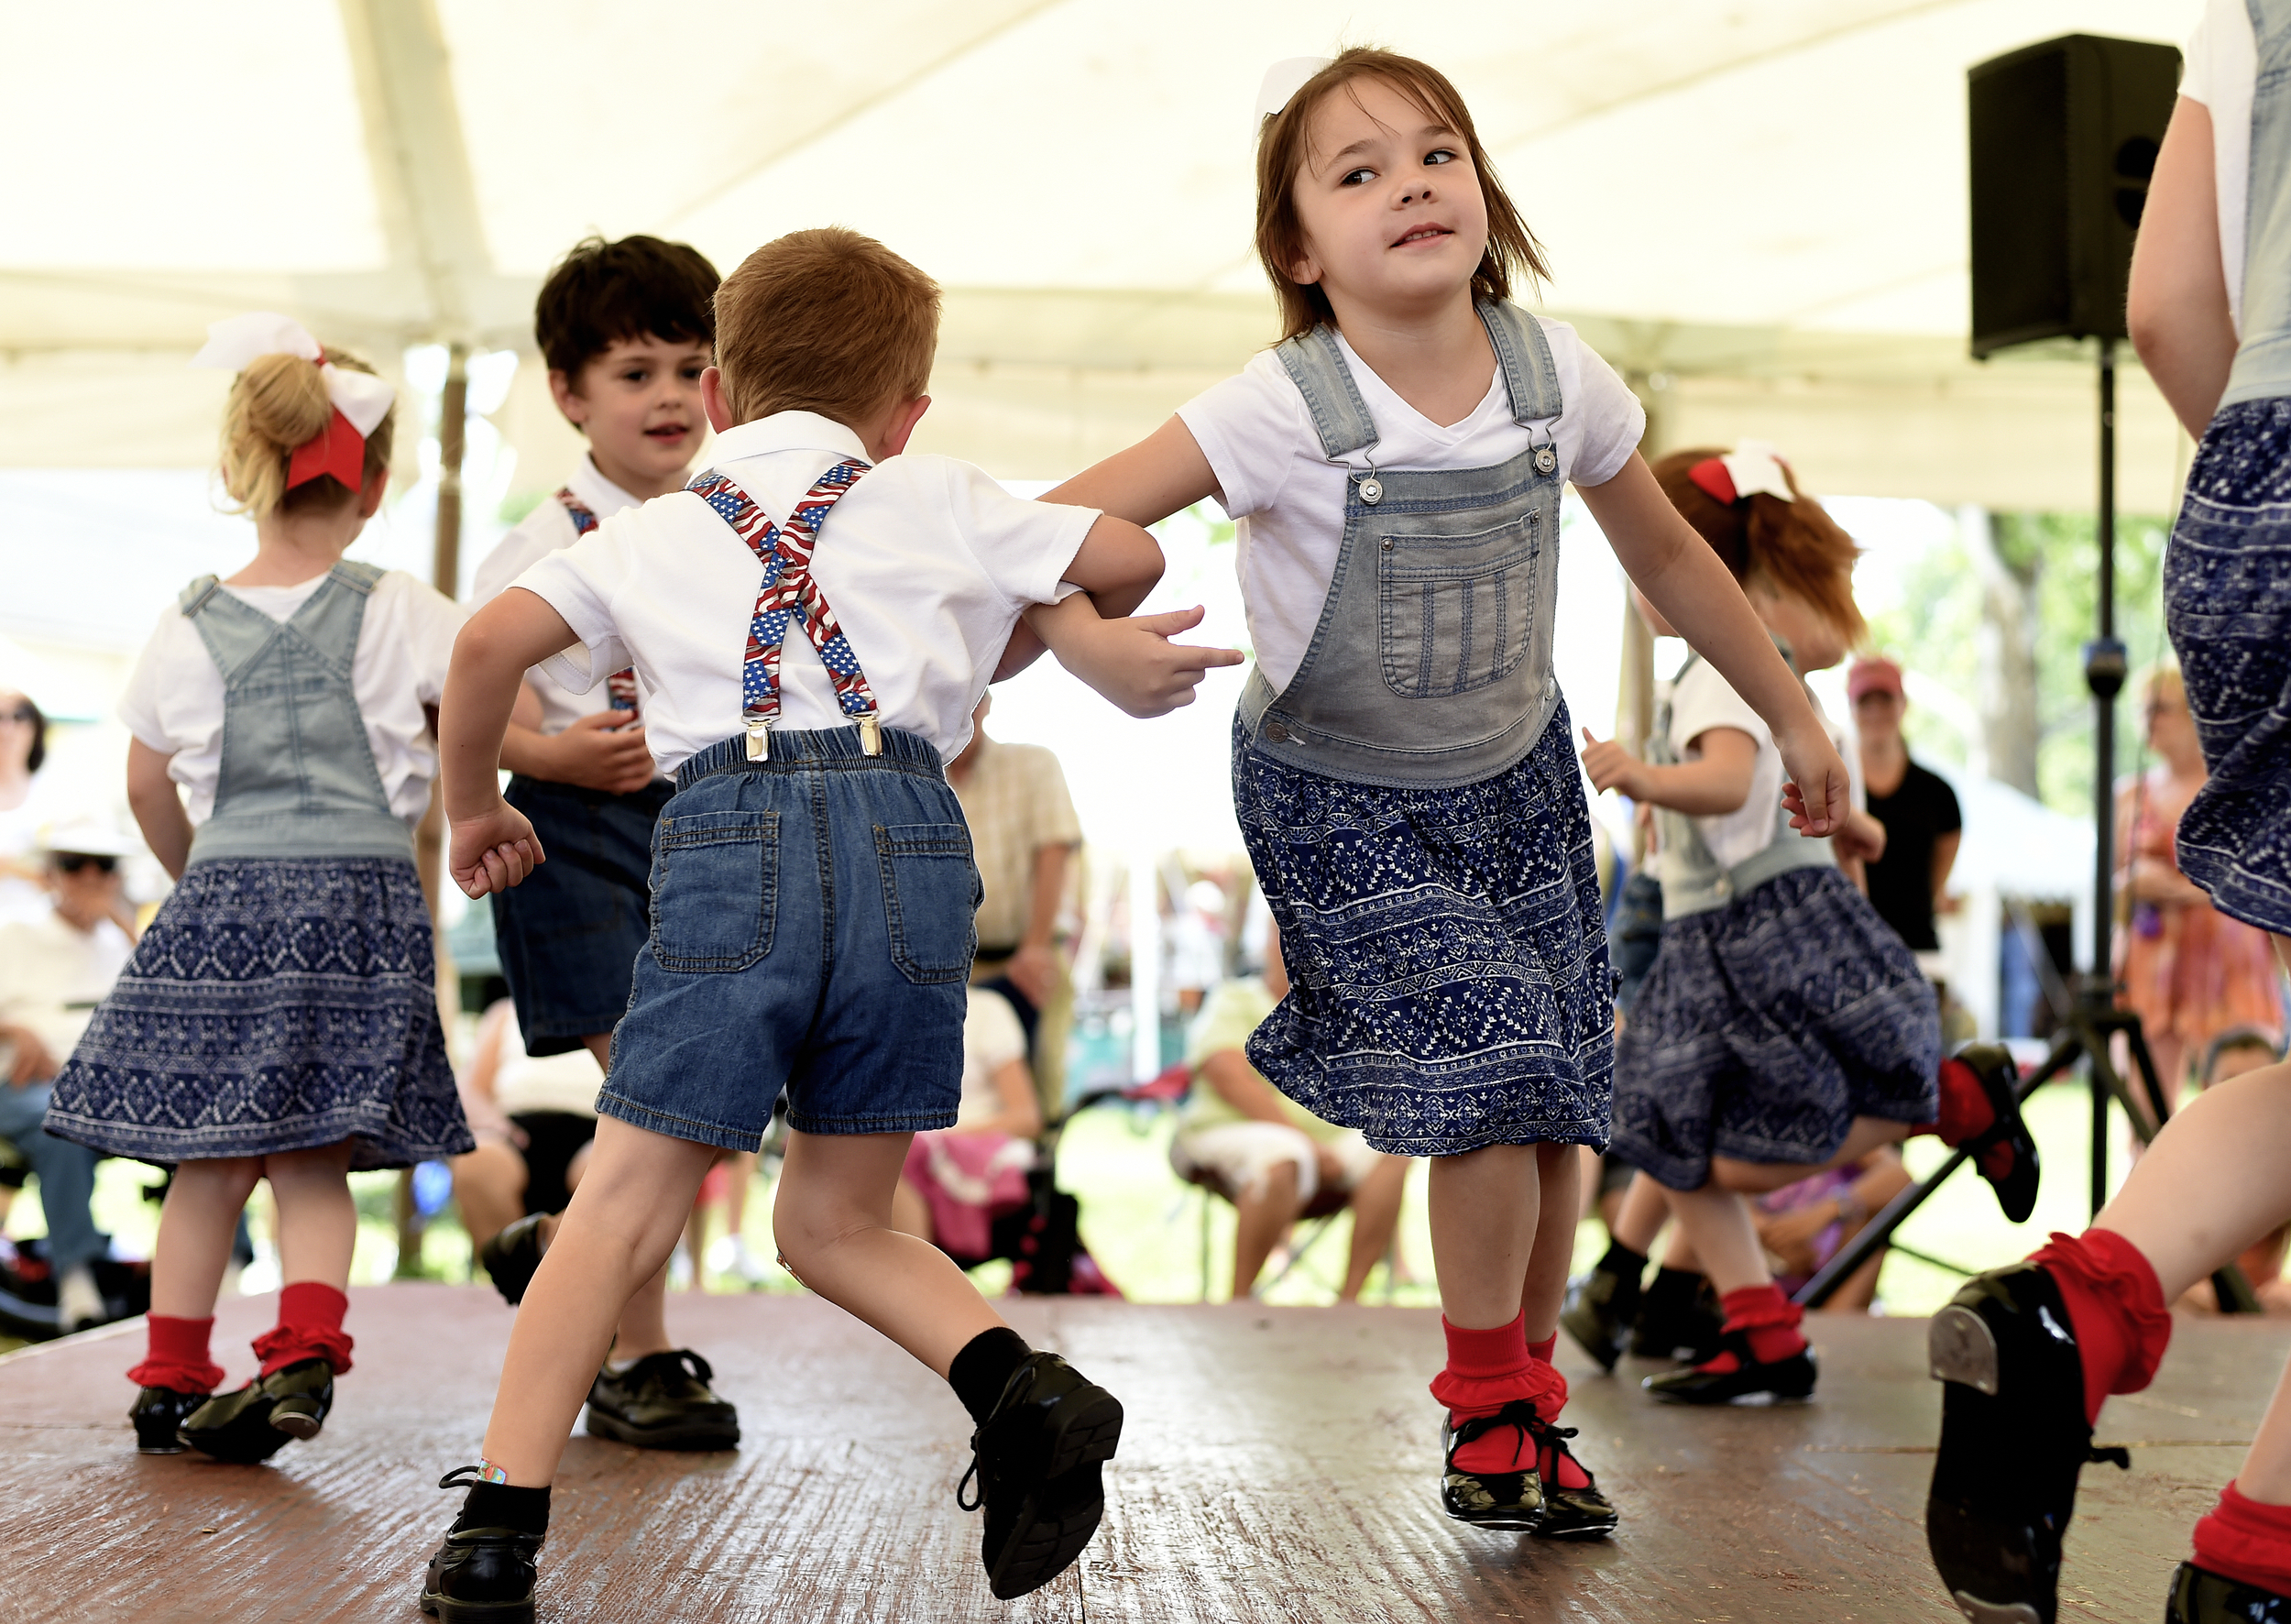 Sarah Schaeffer, 6, of Kutztown dances with her partner Blake Losito, 4, of Hamburg at the Kutztown Folk Festival in Kutztown, PA, on July 6, 2016. (Reading Eagle: Sarah Stier)